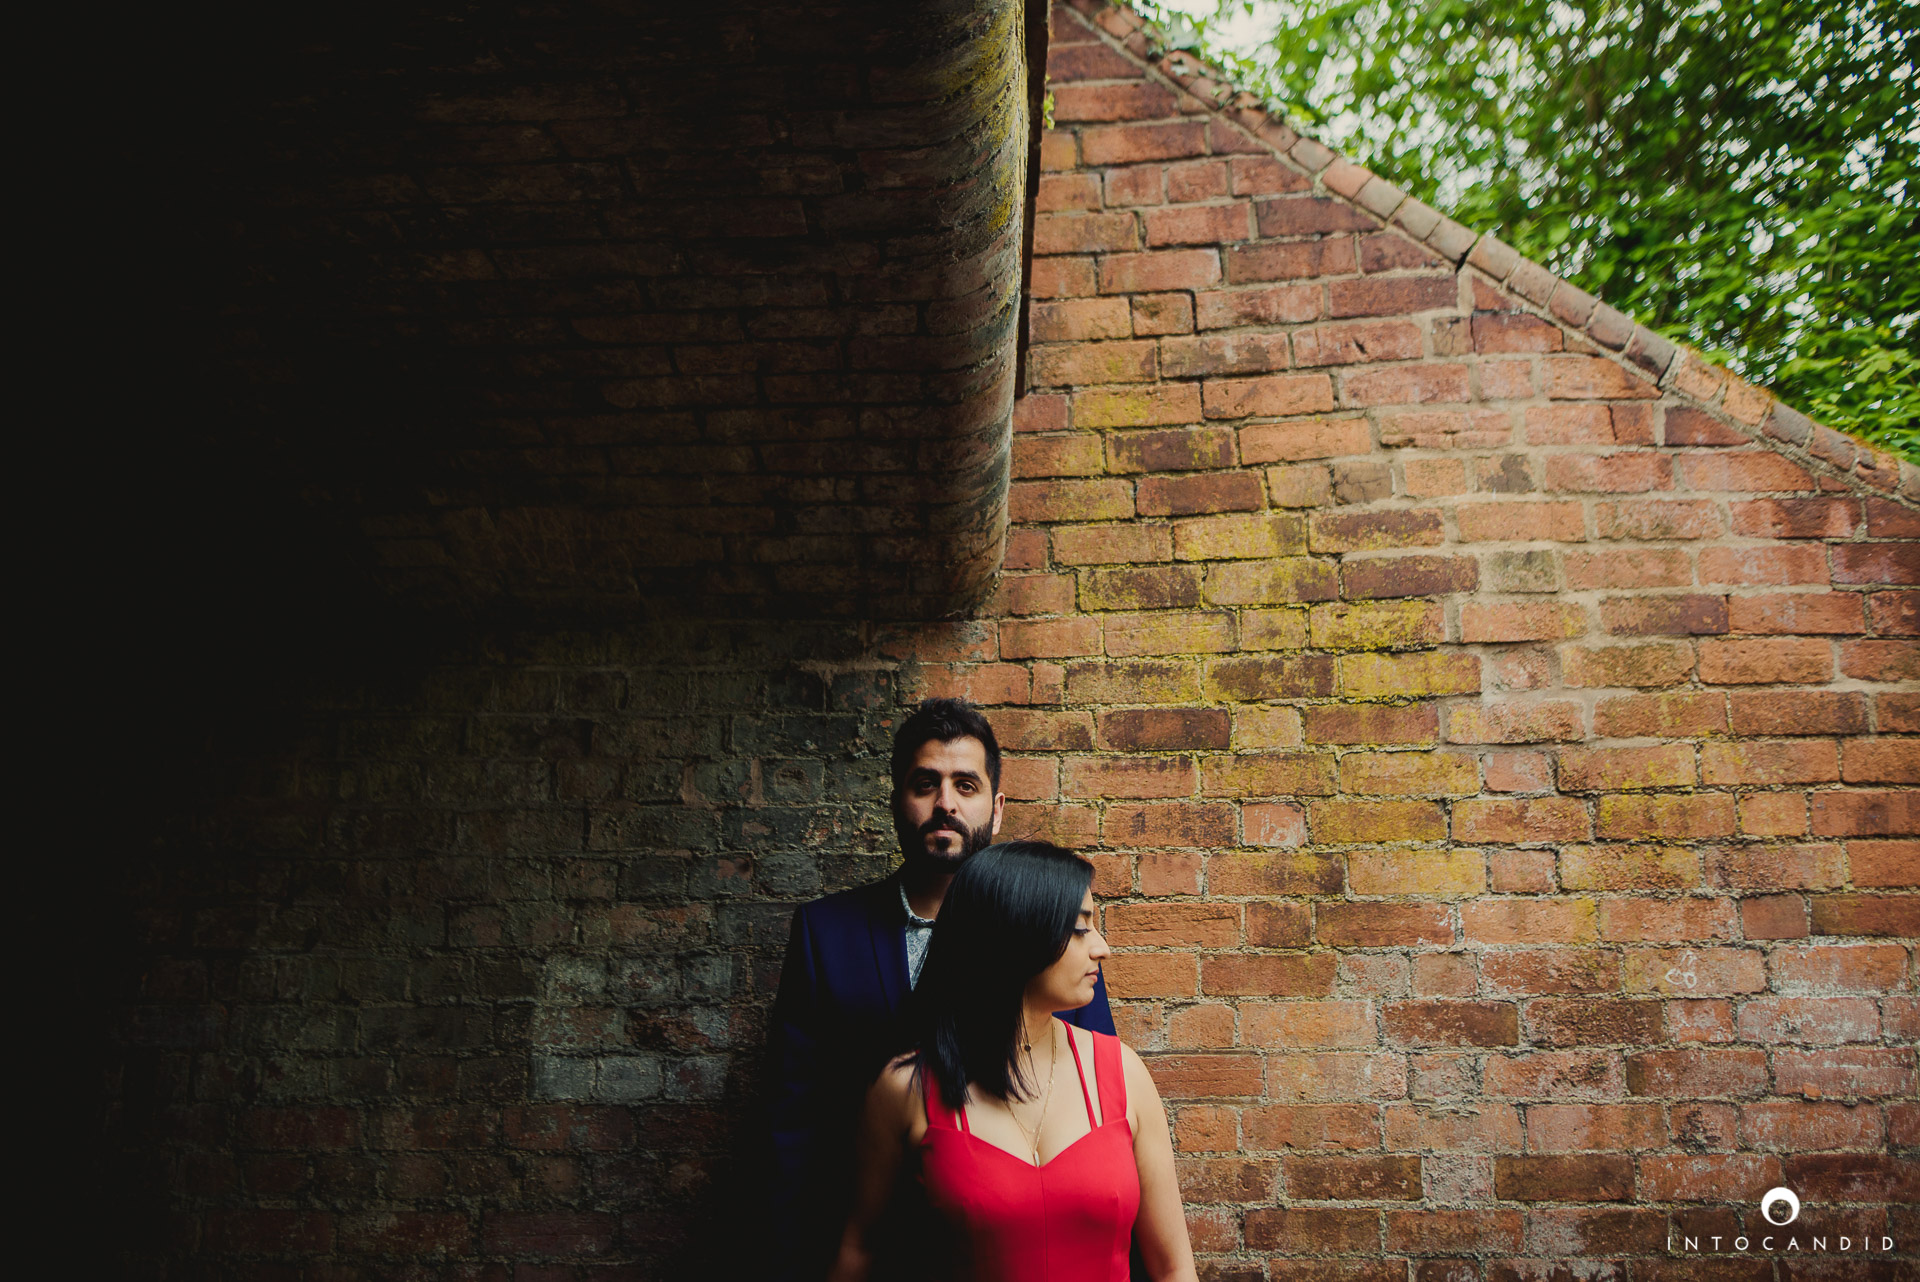 London_prewedding_Photographer_Intocandid_Photography_Ketan & Manasvi_11.JPG